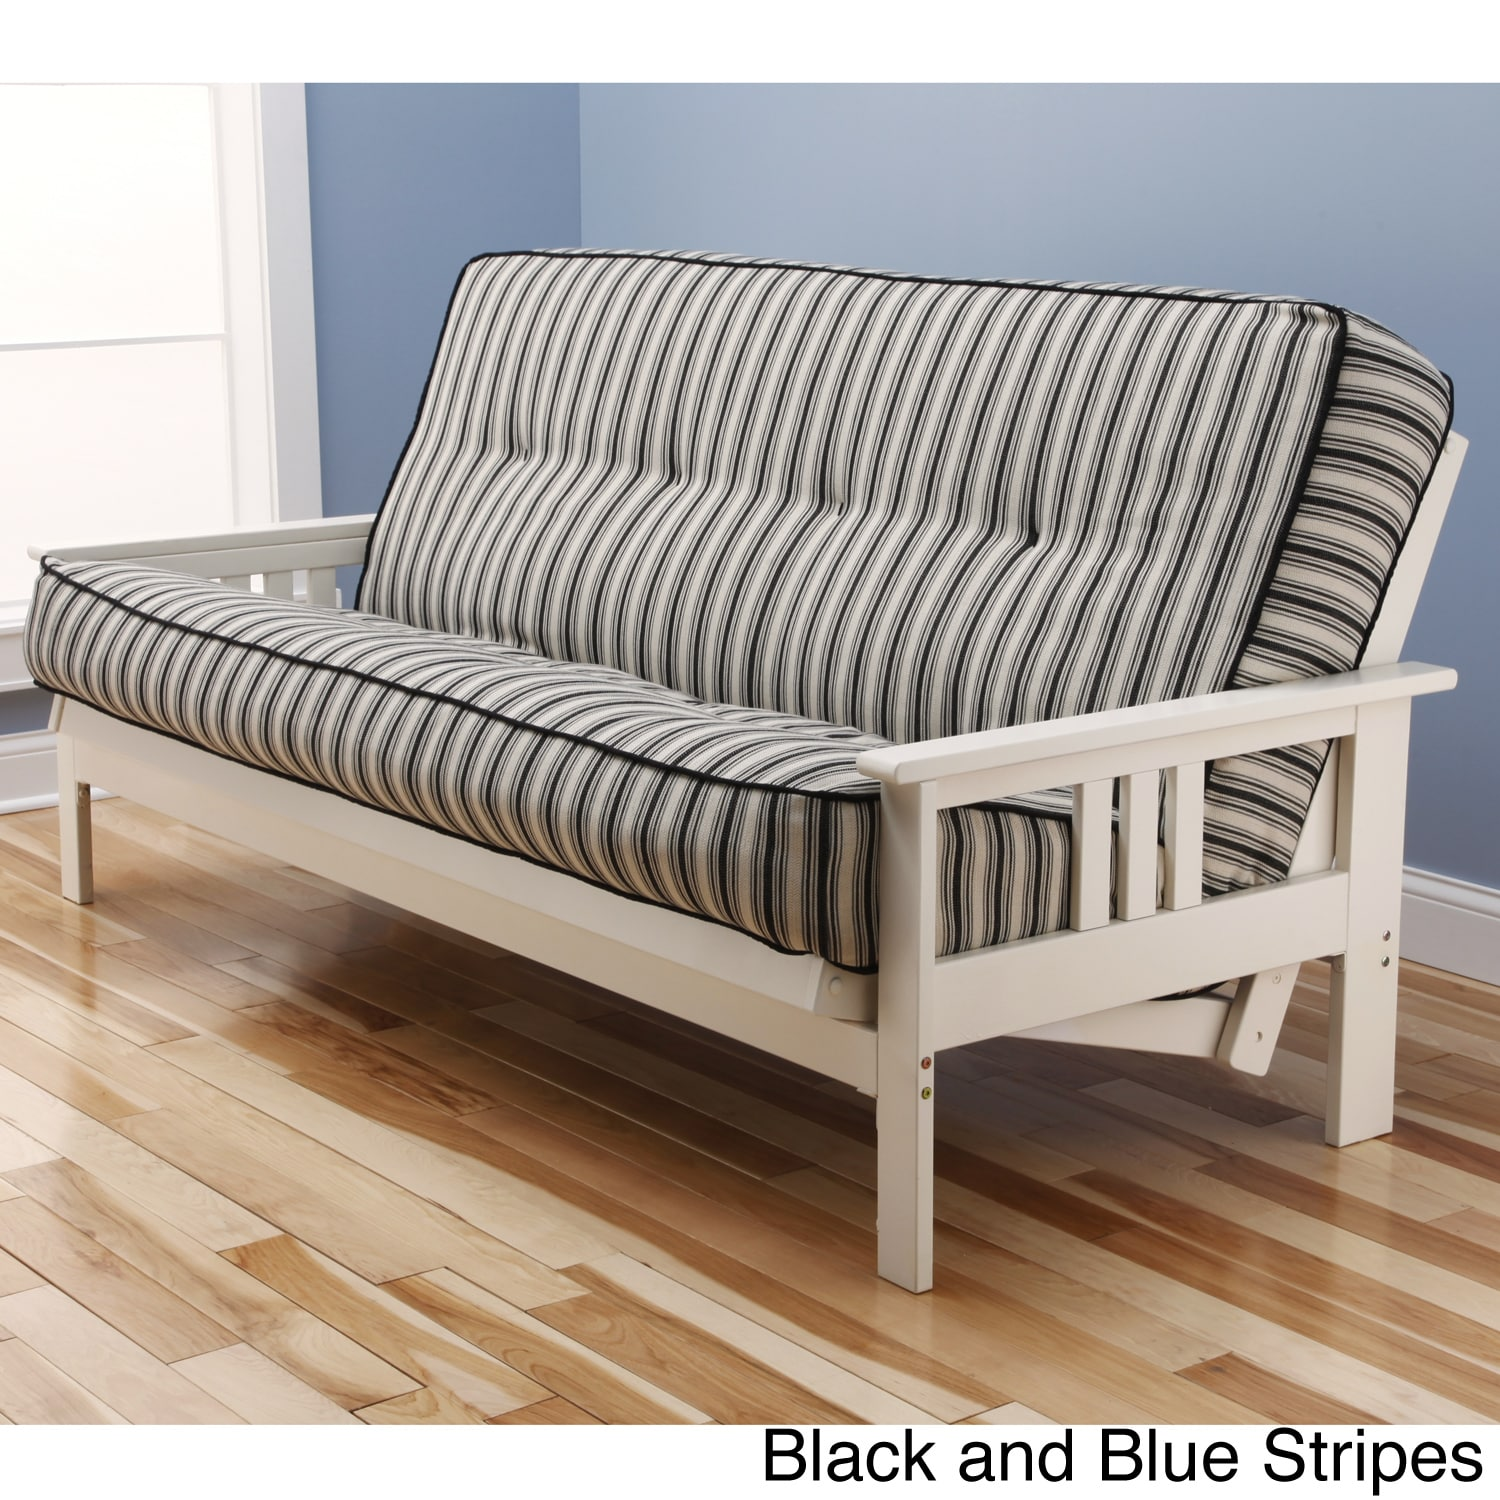 Beli Mont Multi-Flex Futon Frame in Antique White Wood with Innerspring Mattress Set at Sears.com